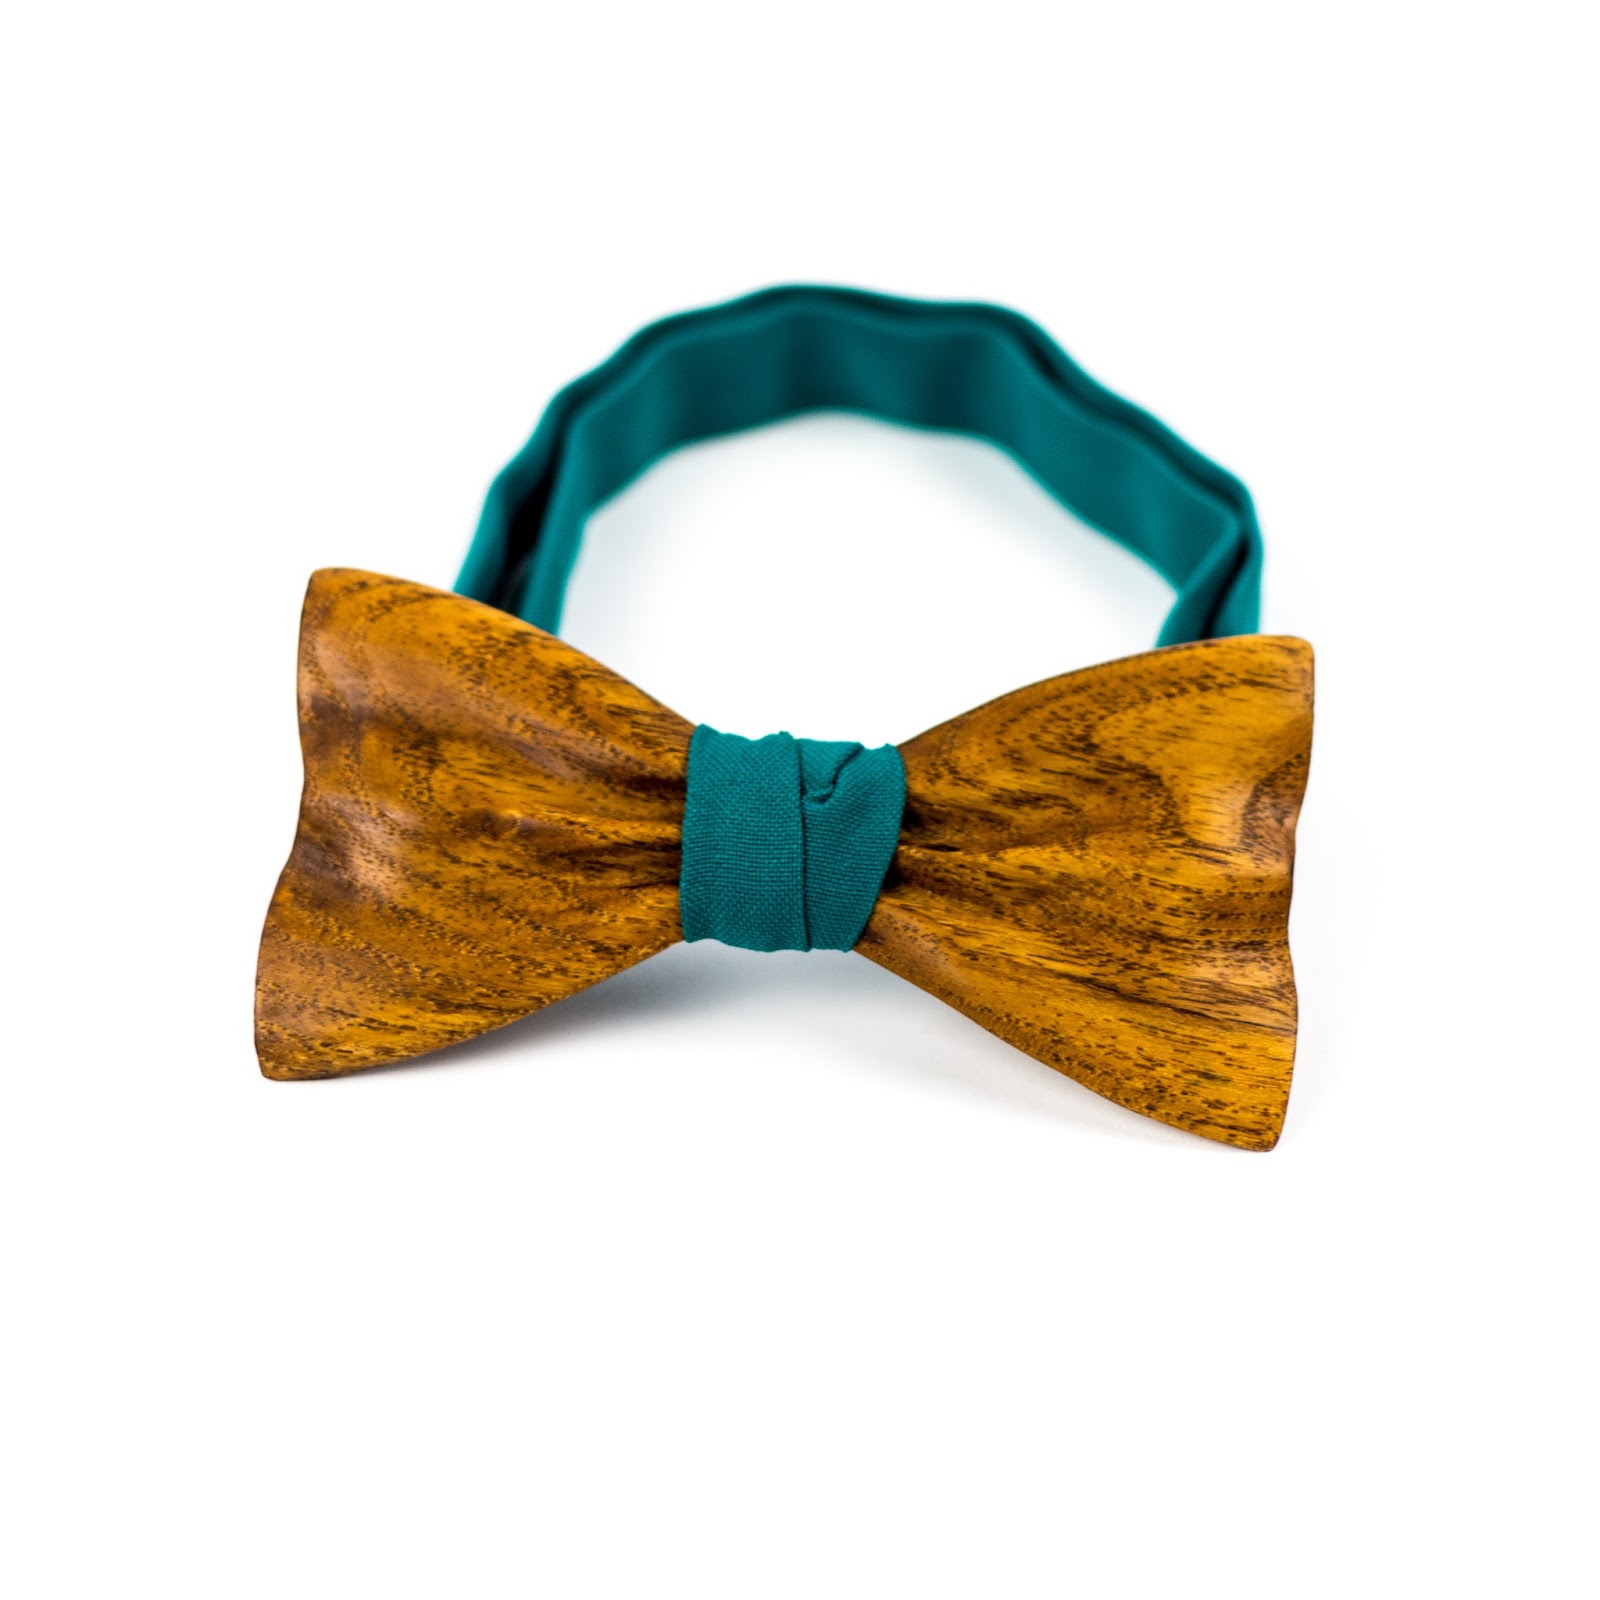 Oktie classic wooden bow tie classic bowtie mans accessory mans neck each bow tie is made by hand so there may be slight variation in the exact size they should be close to the following dimensions ccuart Image collections